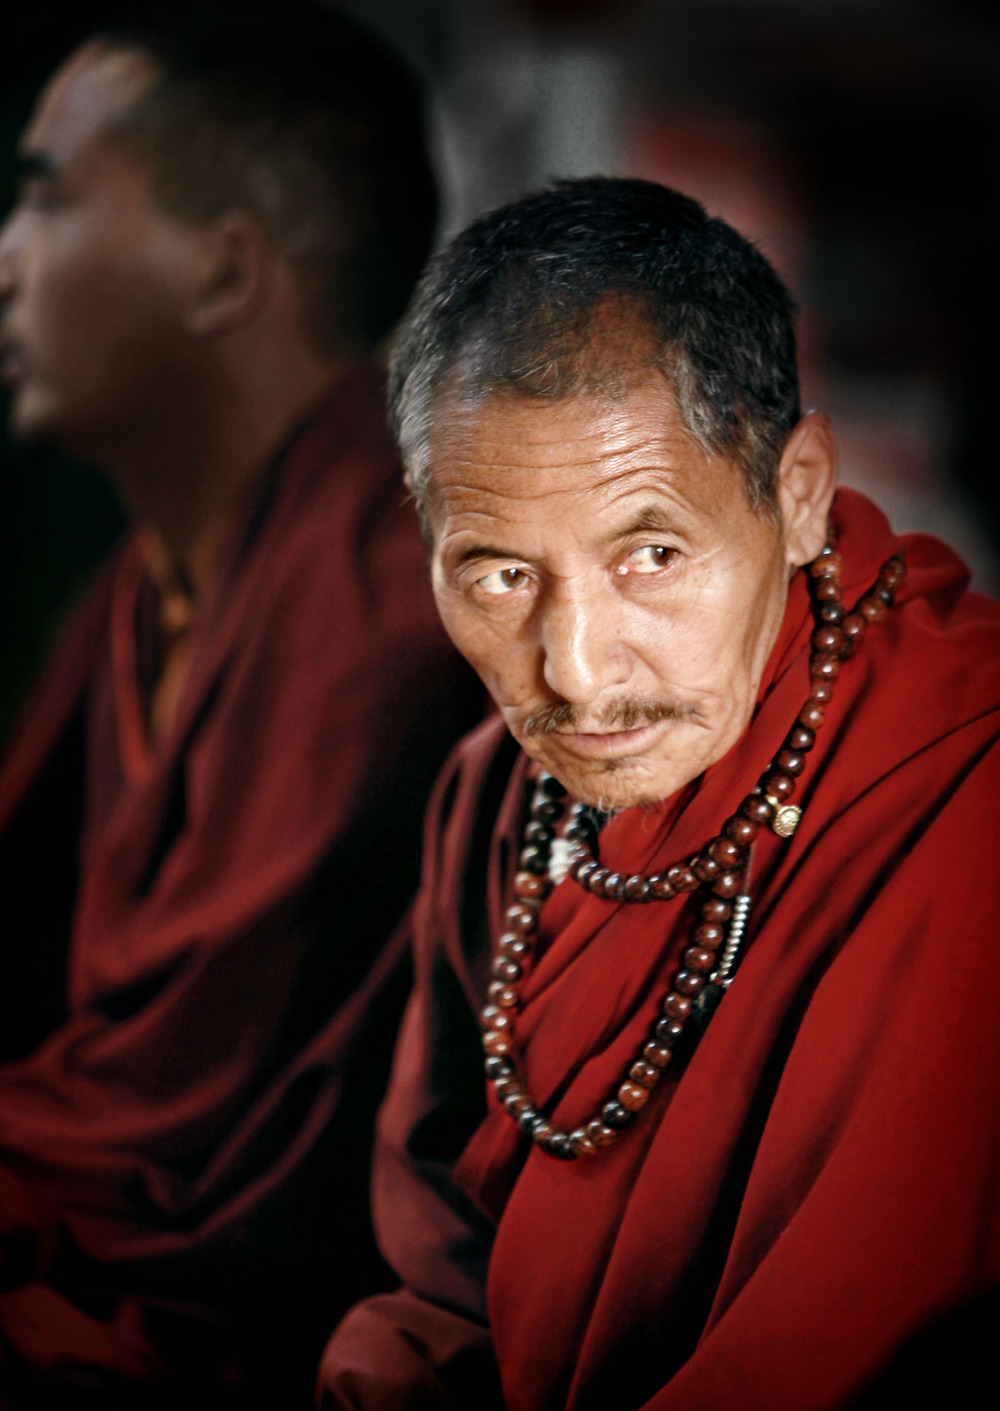 Monk during morning Puja, Hemis Gompa, Ladakh, India